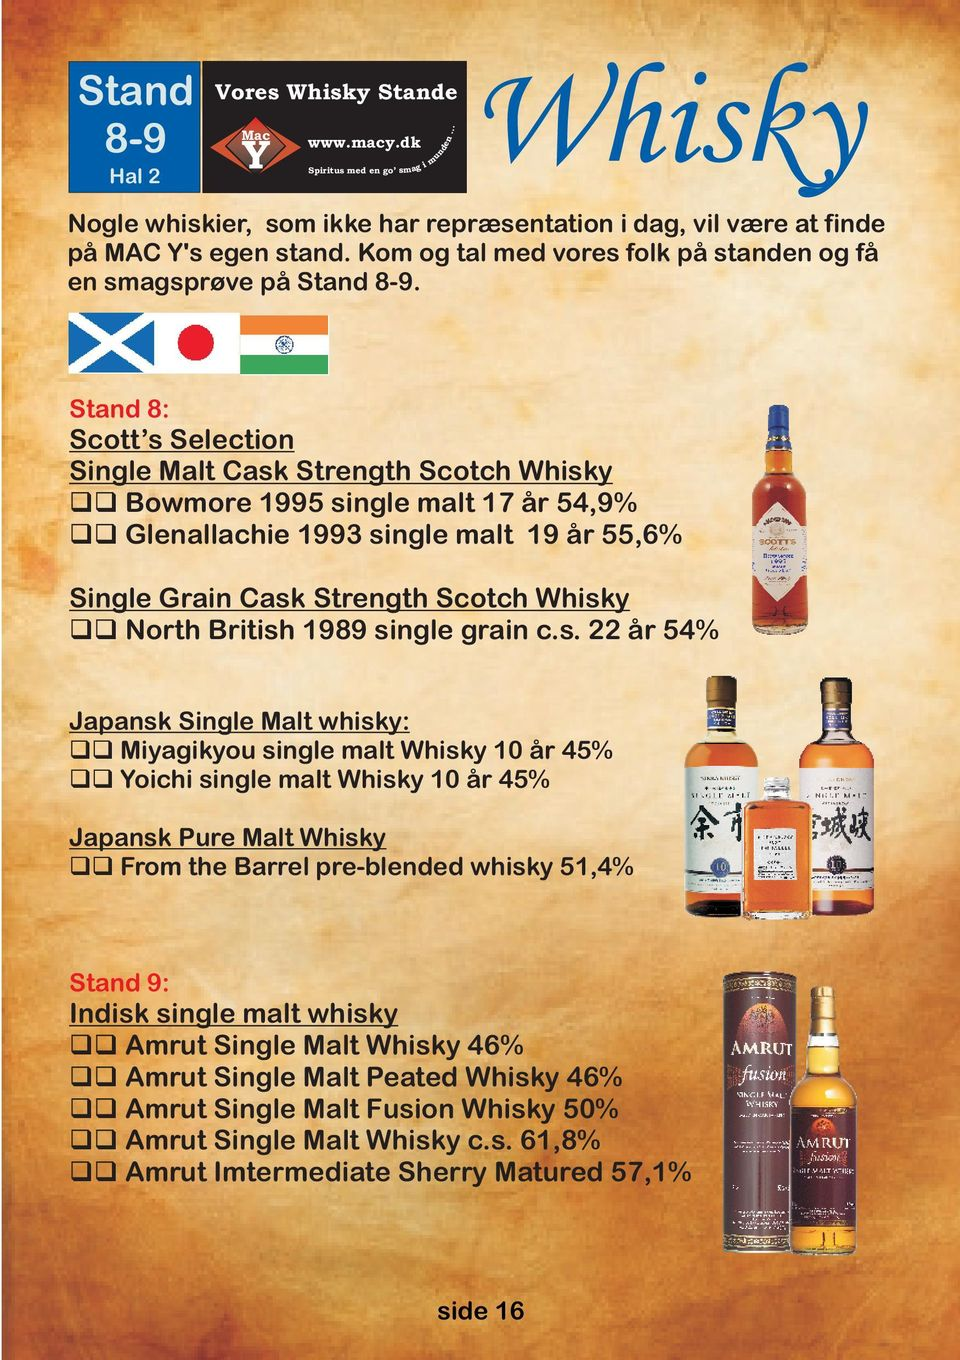 Stand 8: Scott s Selection Single Malt Cask Strength Scotch Whisky Bowmore 1995 single malt 17 år 54,9% Glenallachie 1993 single malt 19 år 55,6% Single Grain Cask Strength Scotch Whisky North